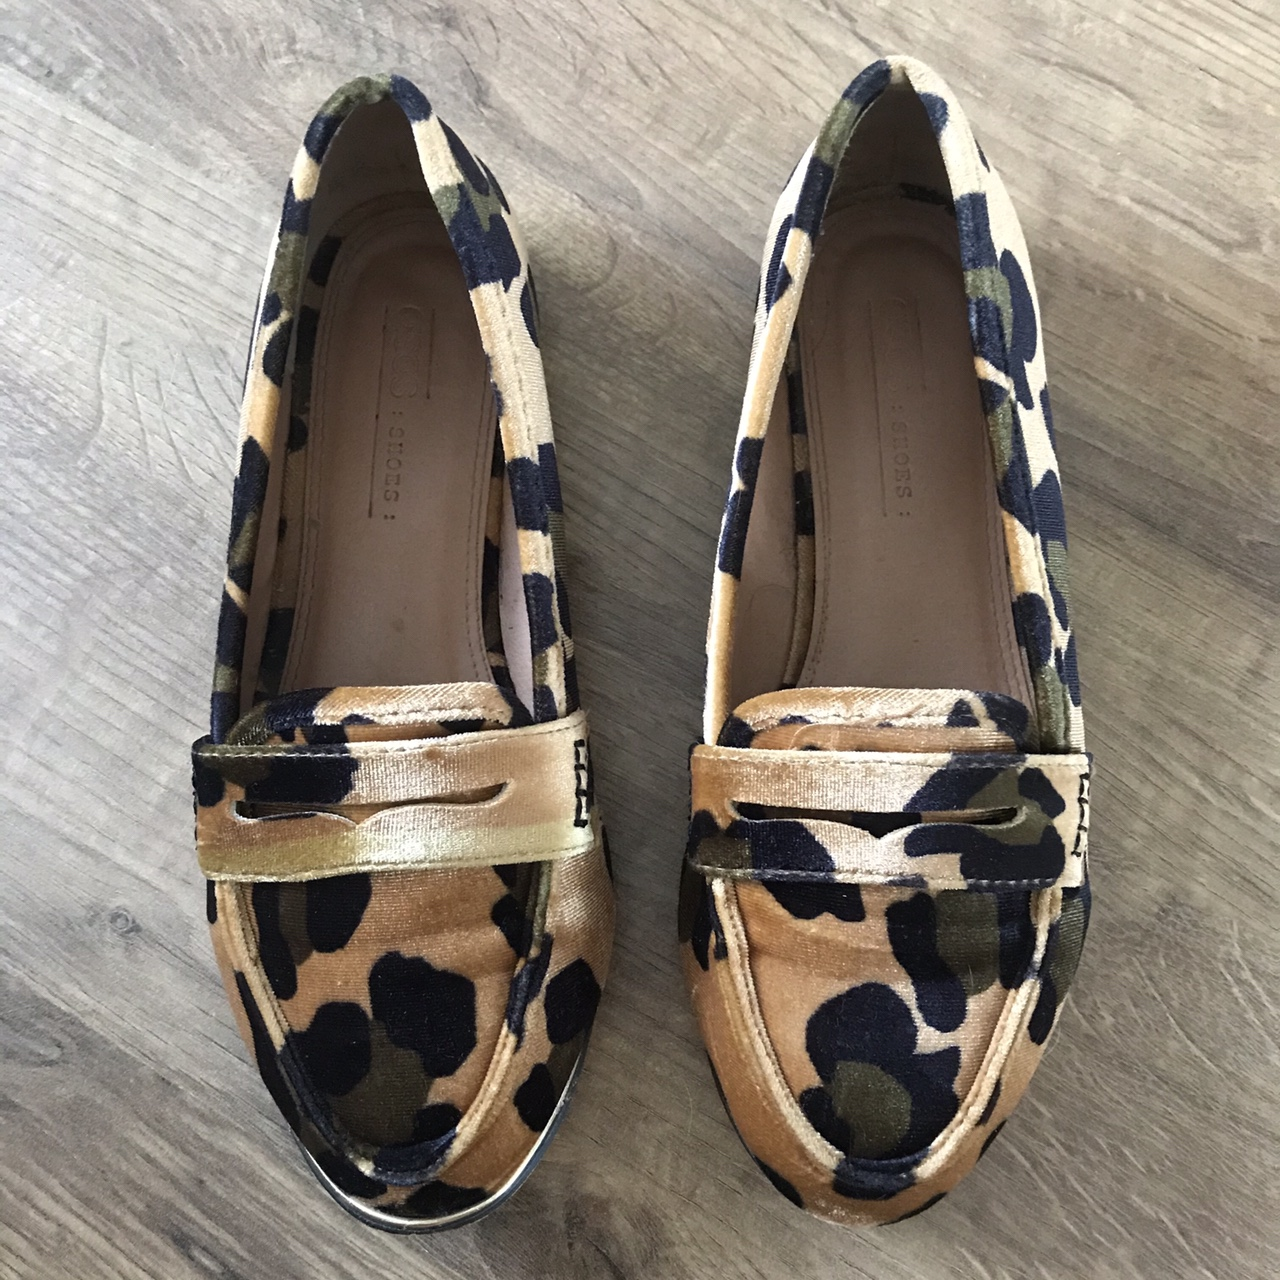 Asos leopard print loafers - Size 4